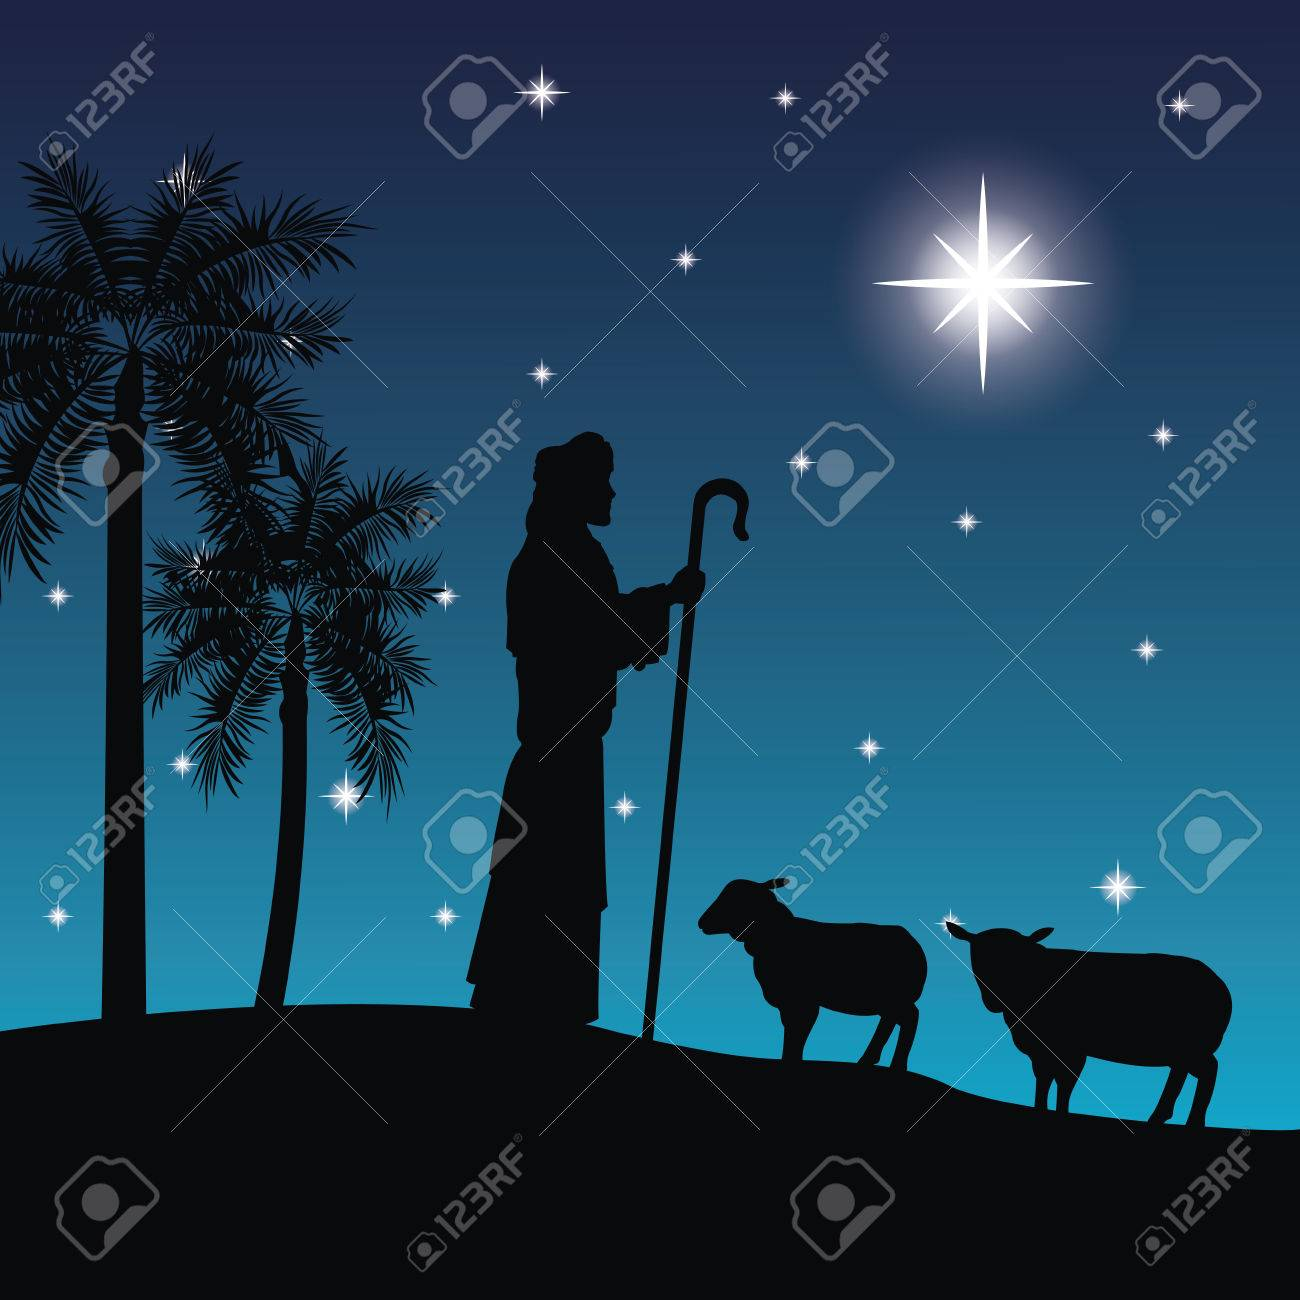 Merry Christmas and holy family concept represented by the shepherd and his sheeps icon. Silhouette and flat illustration. - 59412425